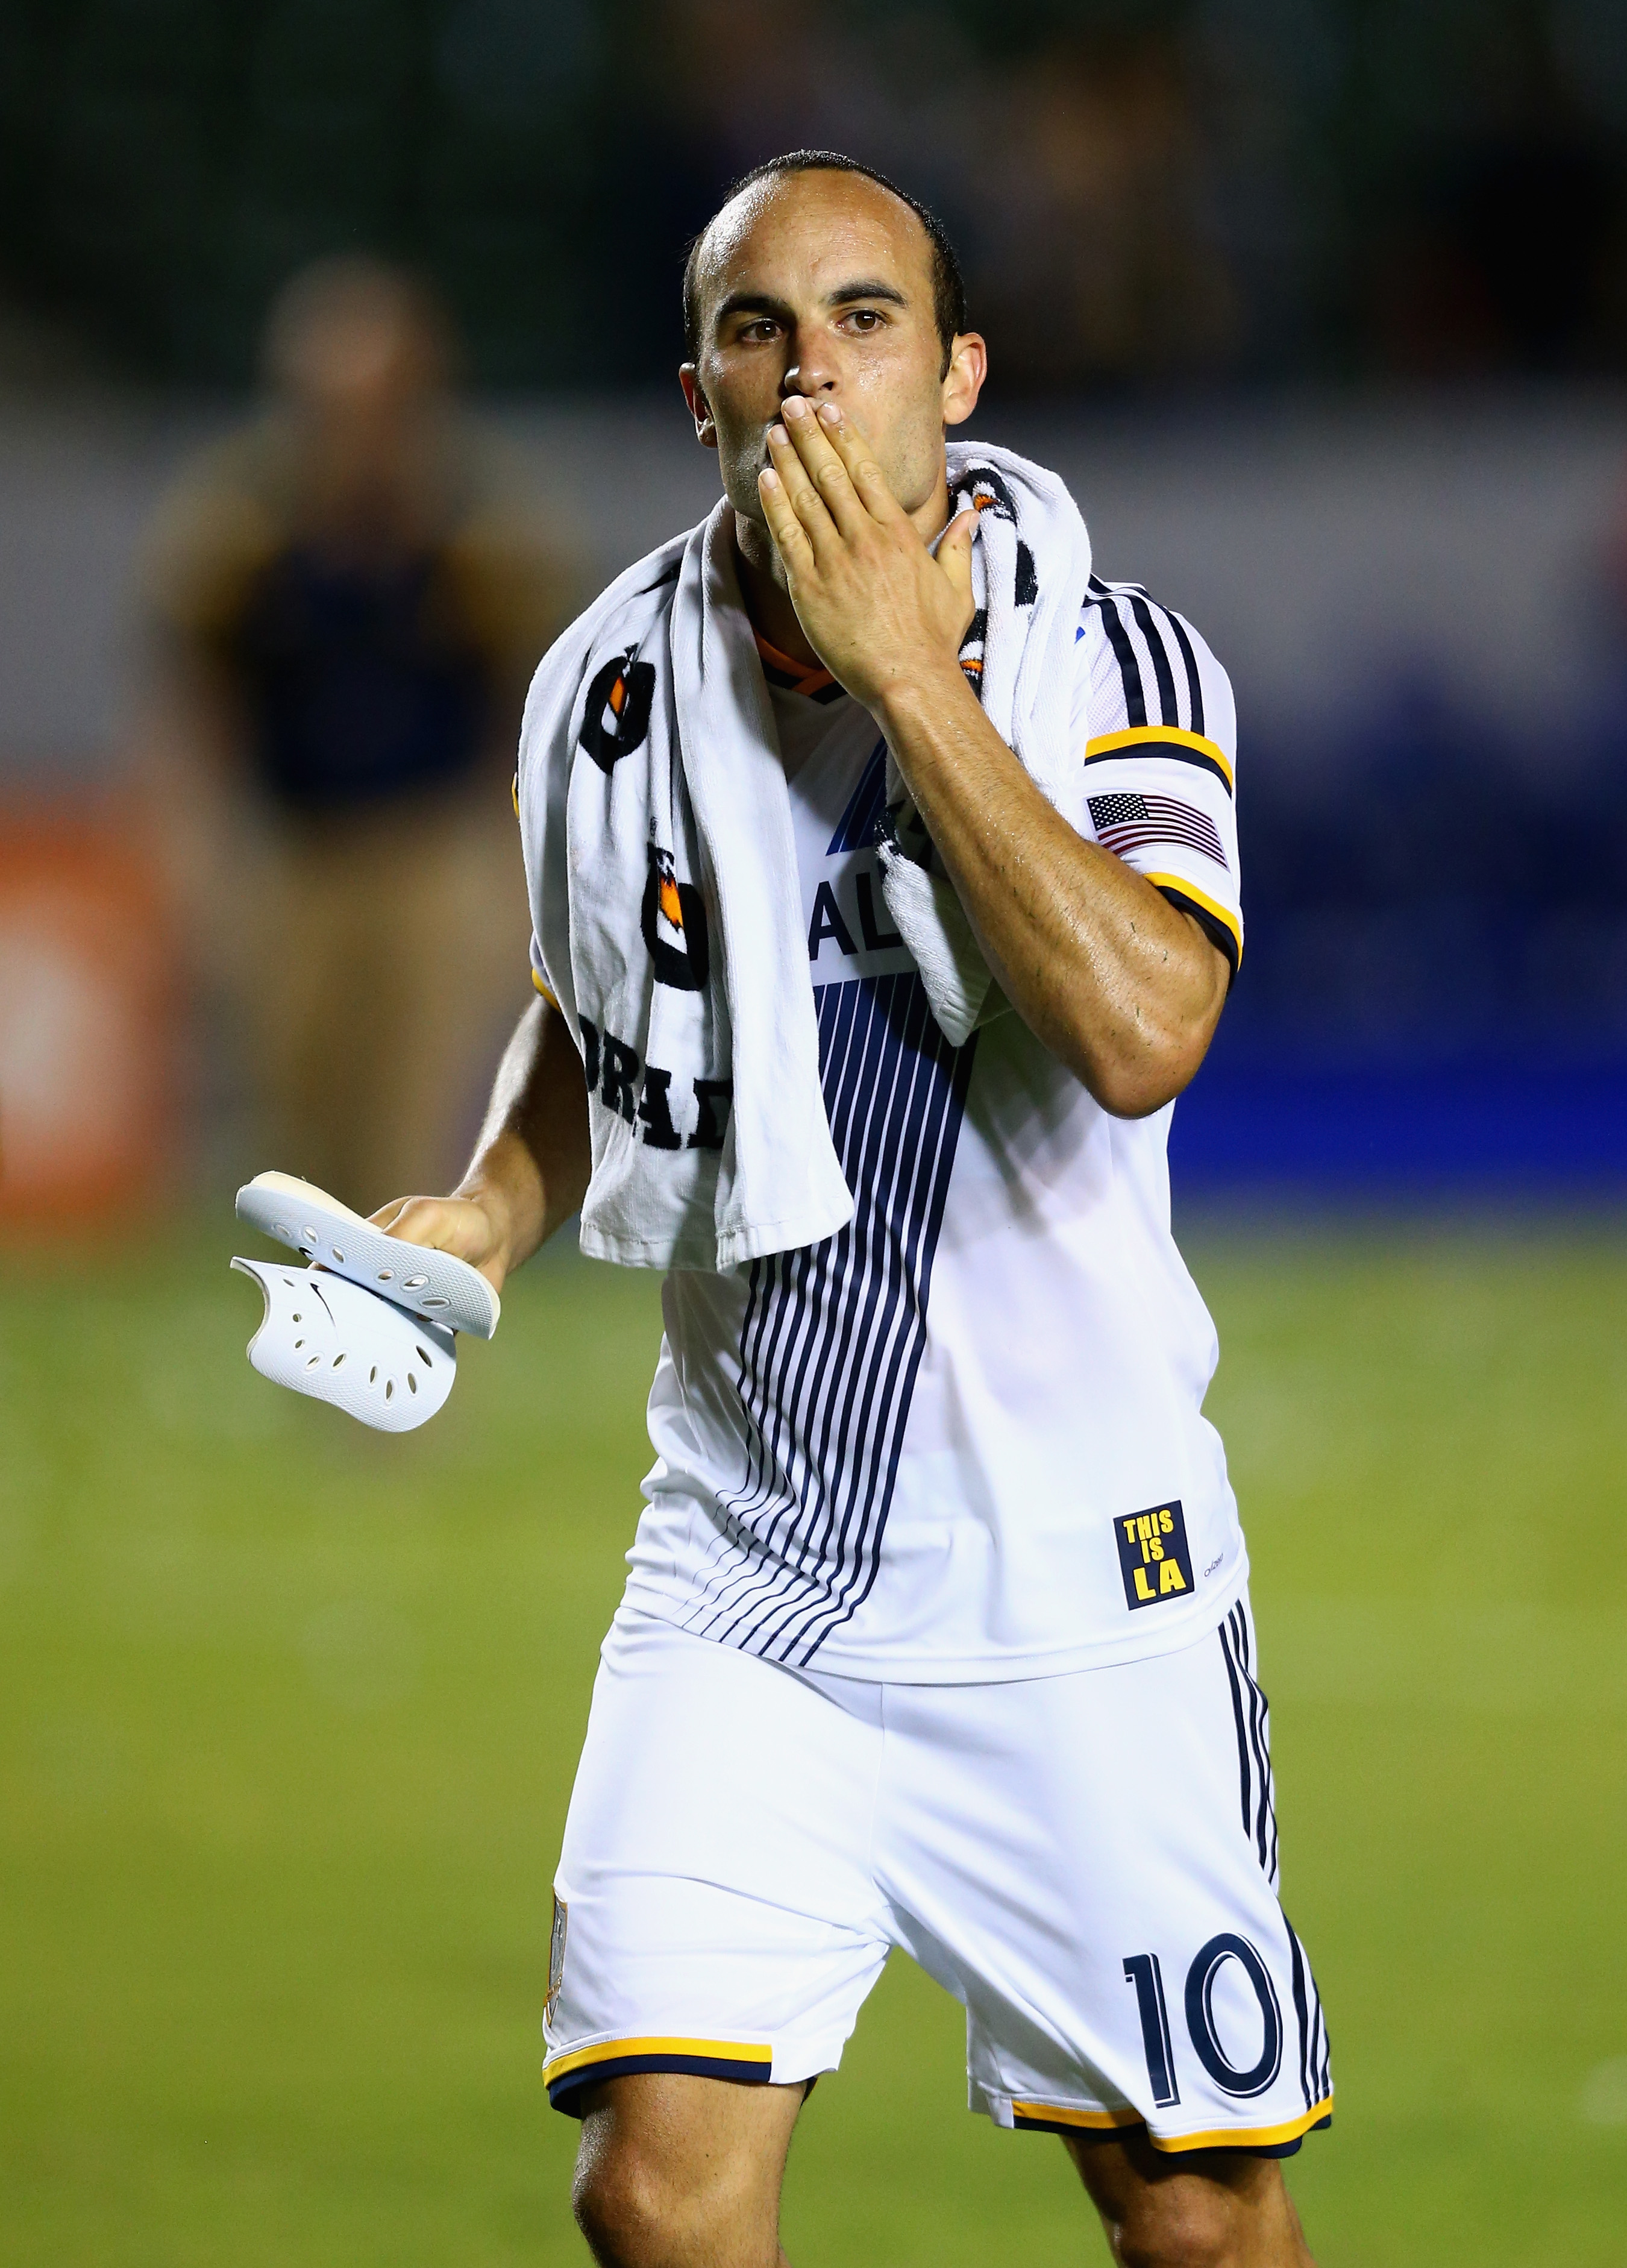 Landon Donovan of Los Angeles Galaxy acknowledges the fans by blowing them a kiss following the game against Vancouver FC at StubHub Center in Los Angeles on Aug. 23, 2014